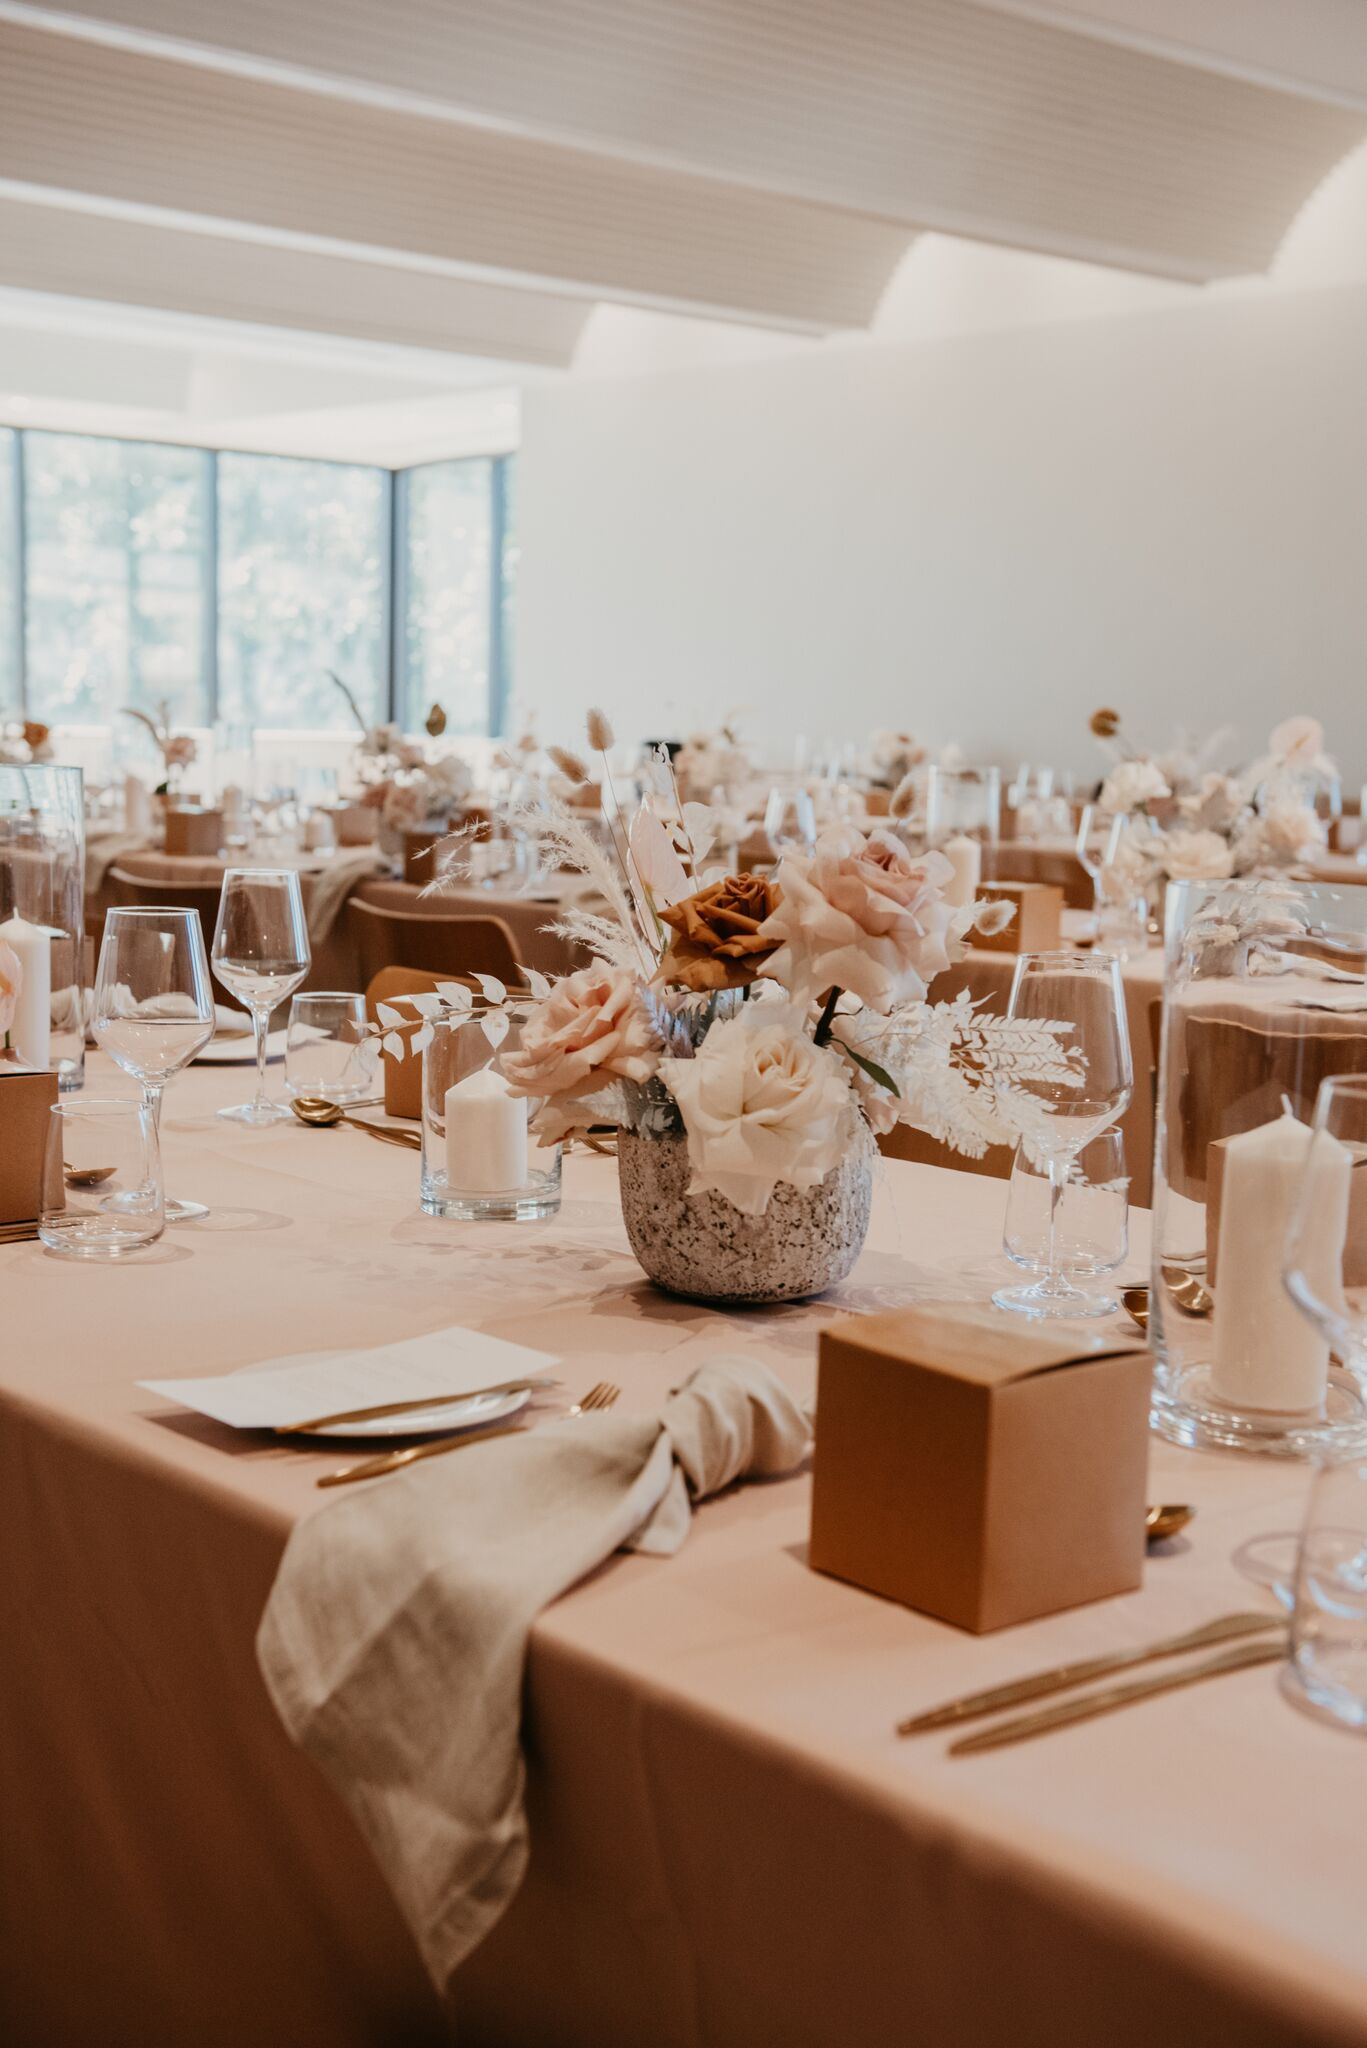 white+white the wedding school Yasmyn and Lincoln The Calile Hotel dusty pink cream florals linens reception venue tables close